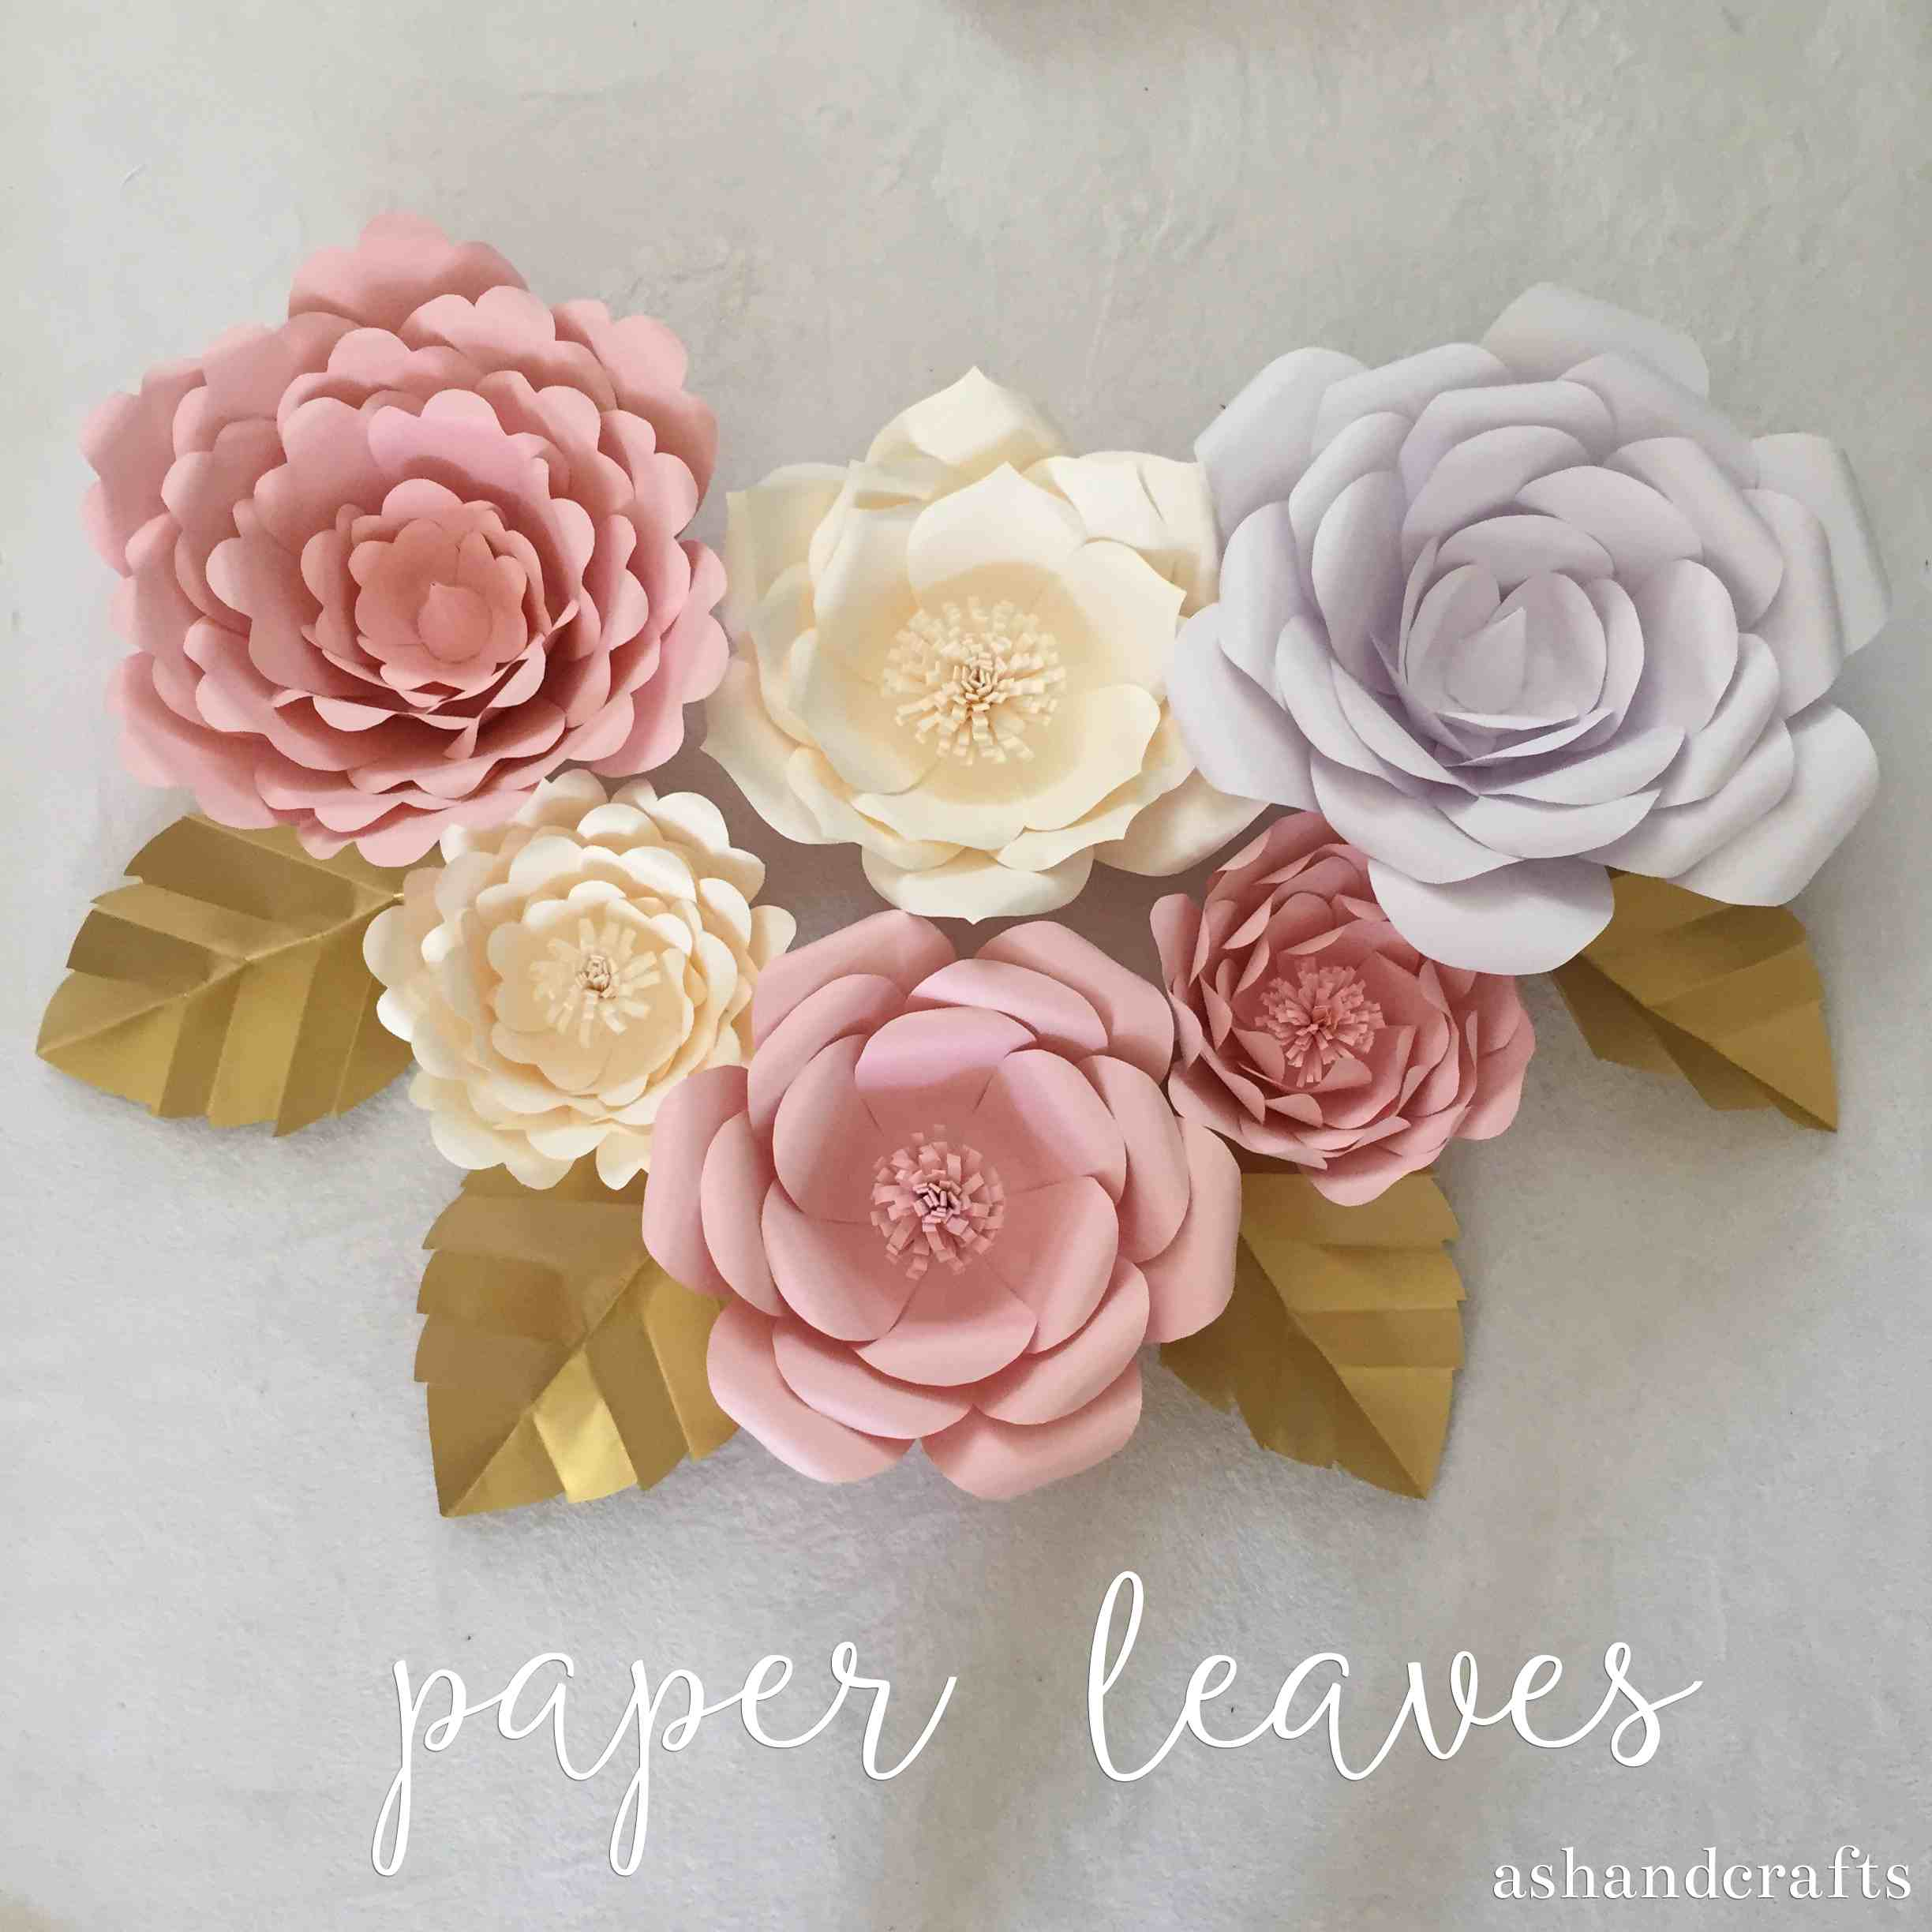 27 fun and easy to make paper flower projects you can make izmirmasajfo Image collections